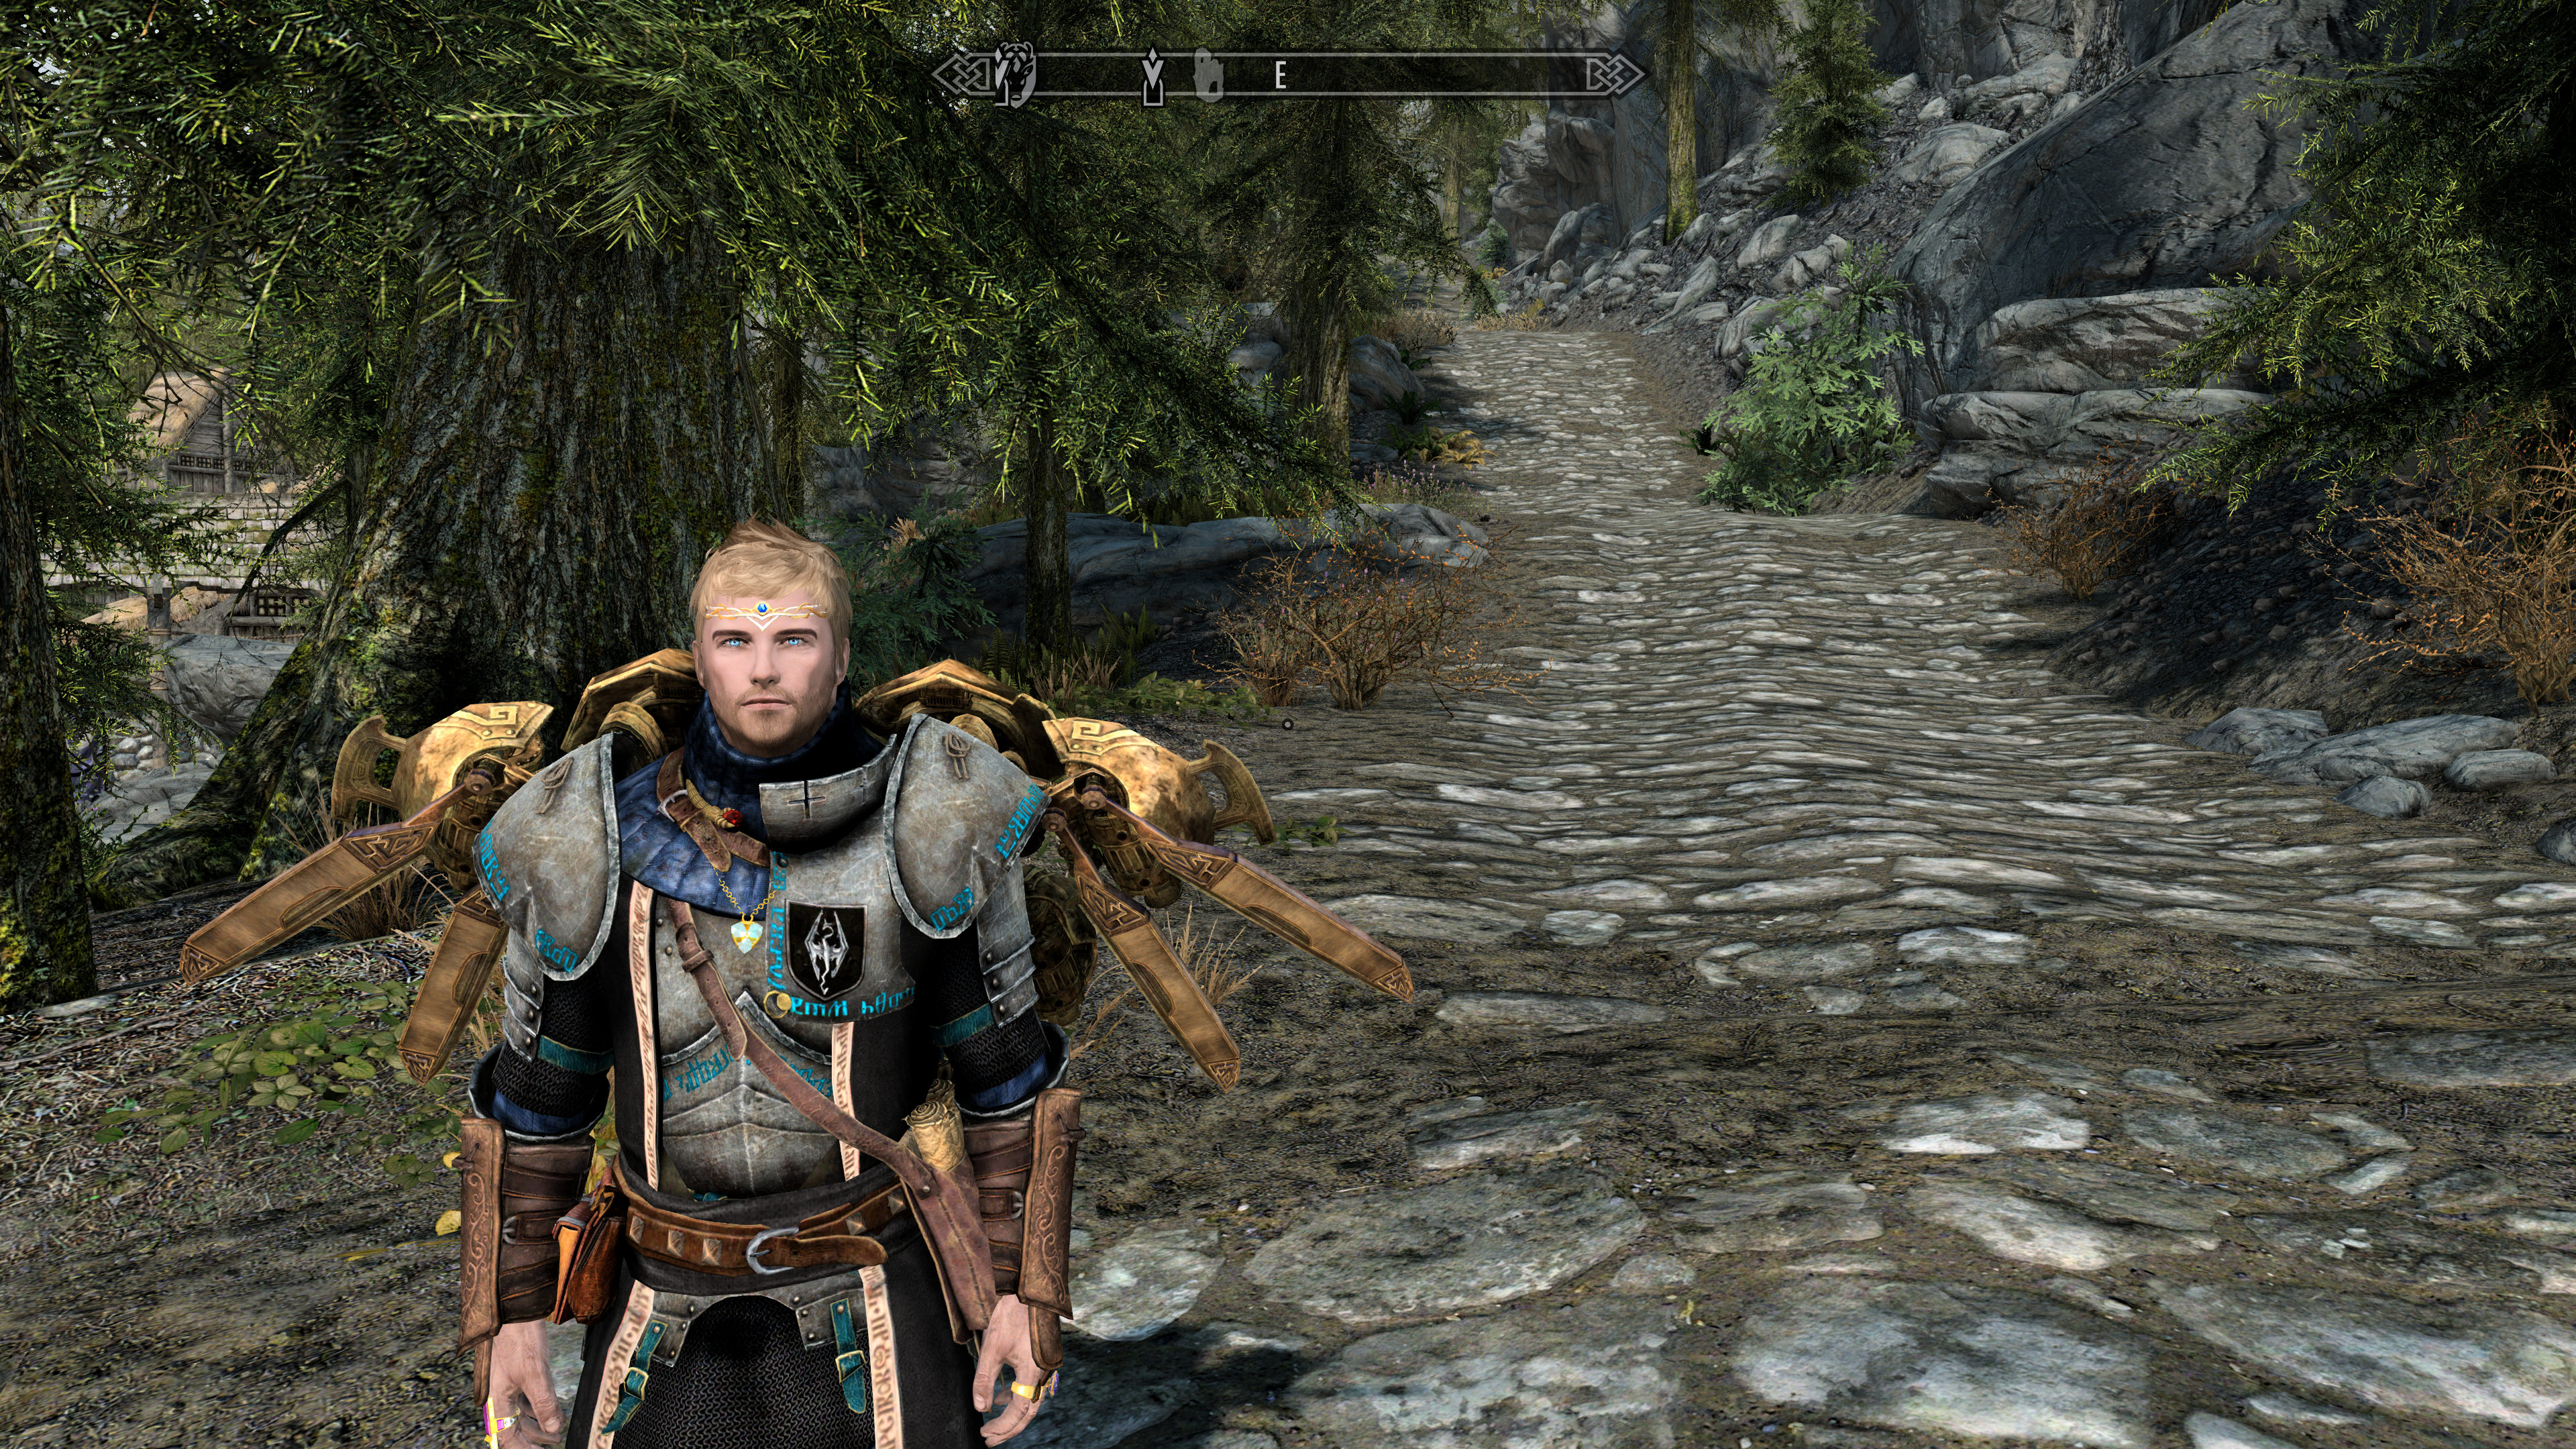 Is there a mod to turn off camera shake and/or light bursts in the